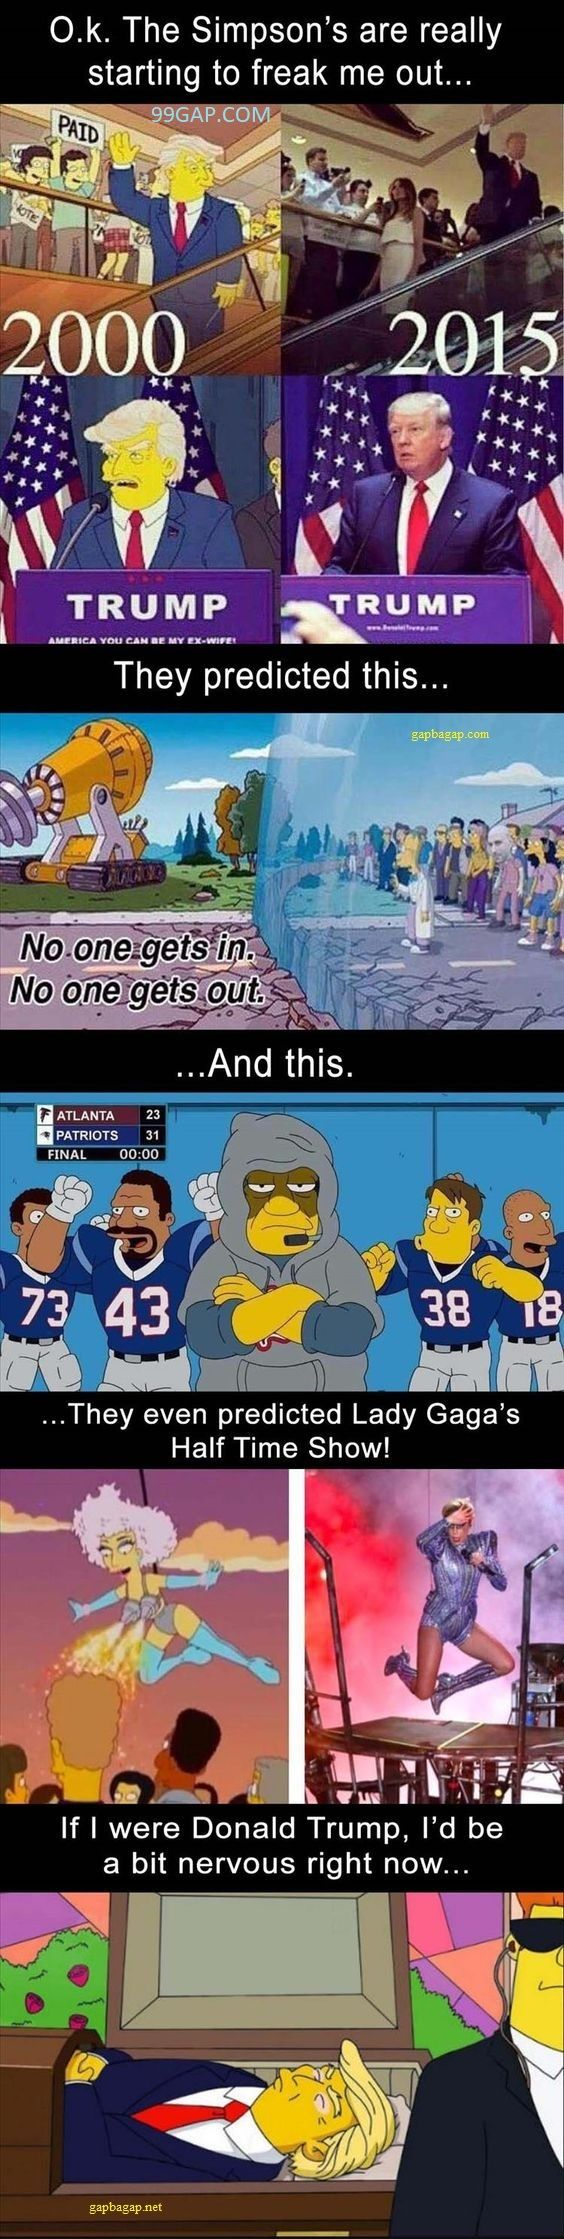 #FunnyPictures Of The Simpsons Predicting About Donald Trump